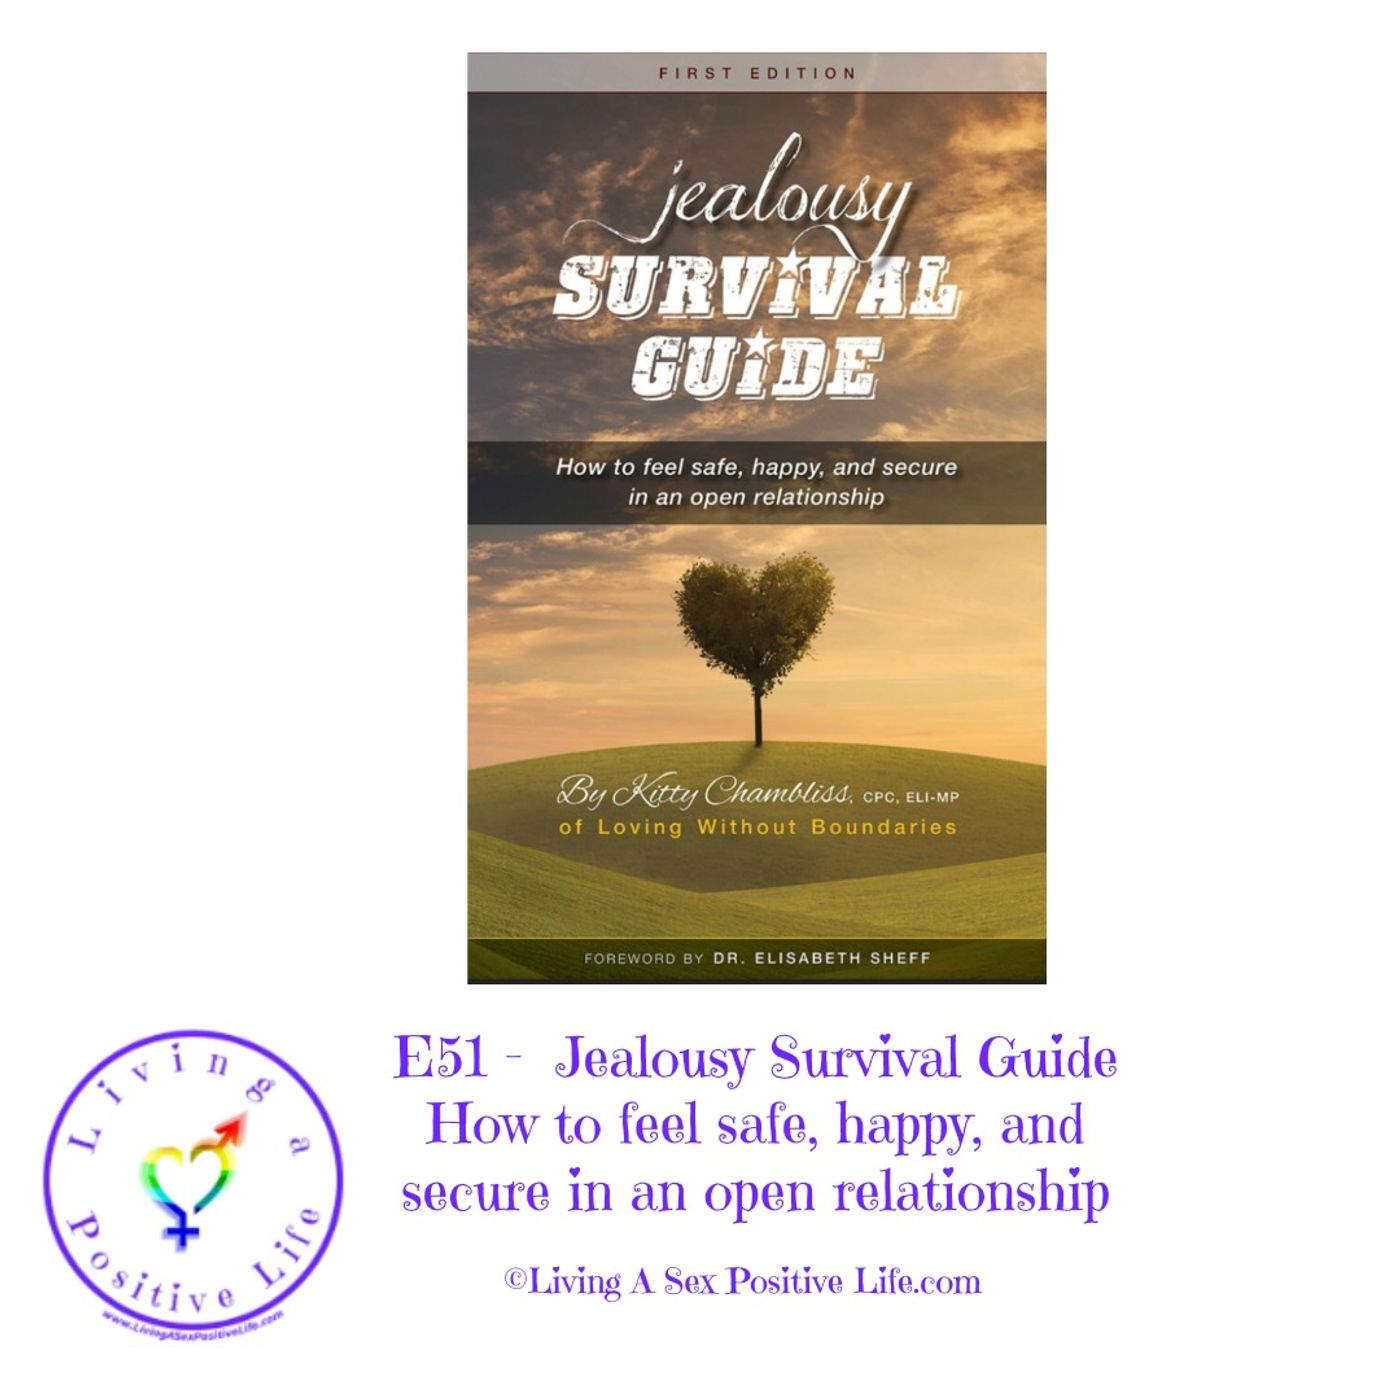 Sex Positive Me - E51 -  Jealousy Survival Guide: How to feel safe, happy, and secure in an open relationship